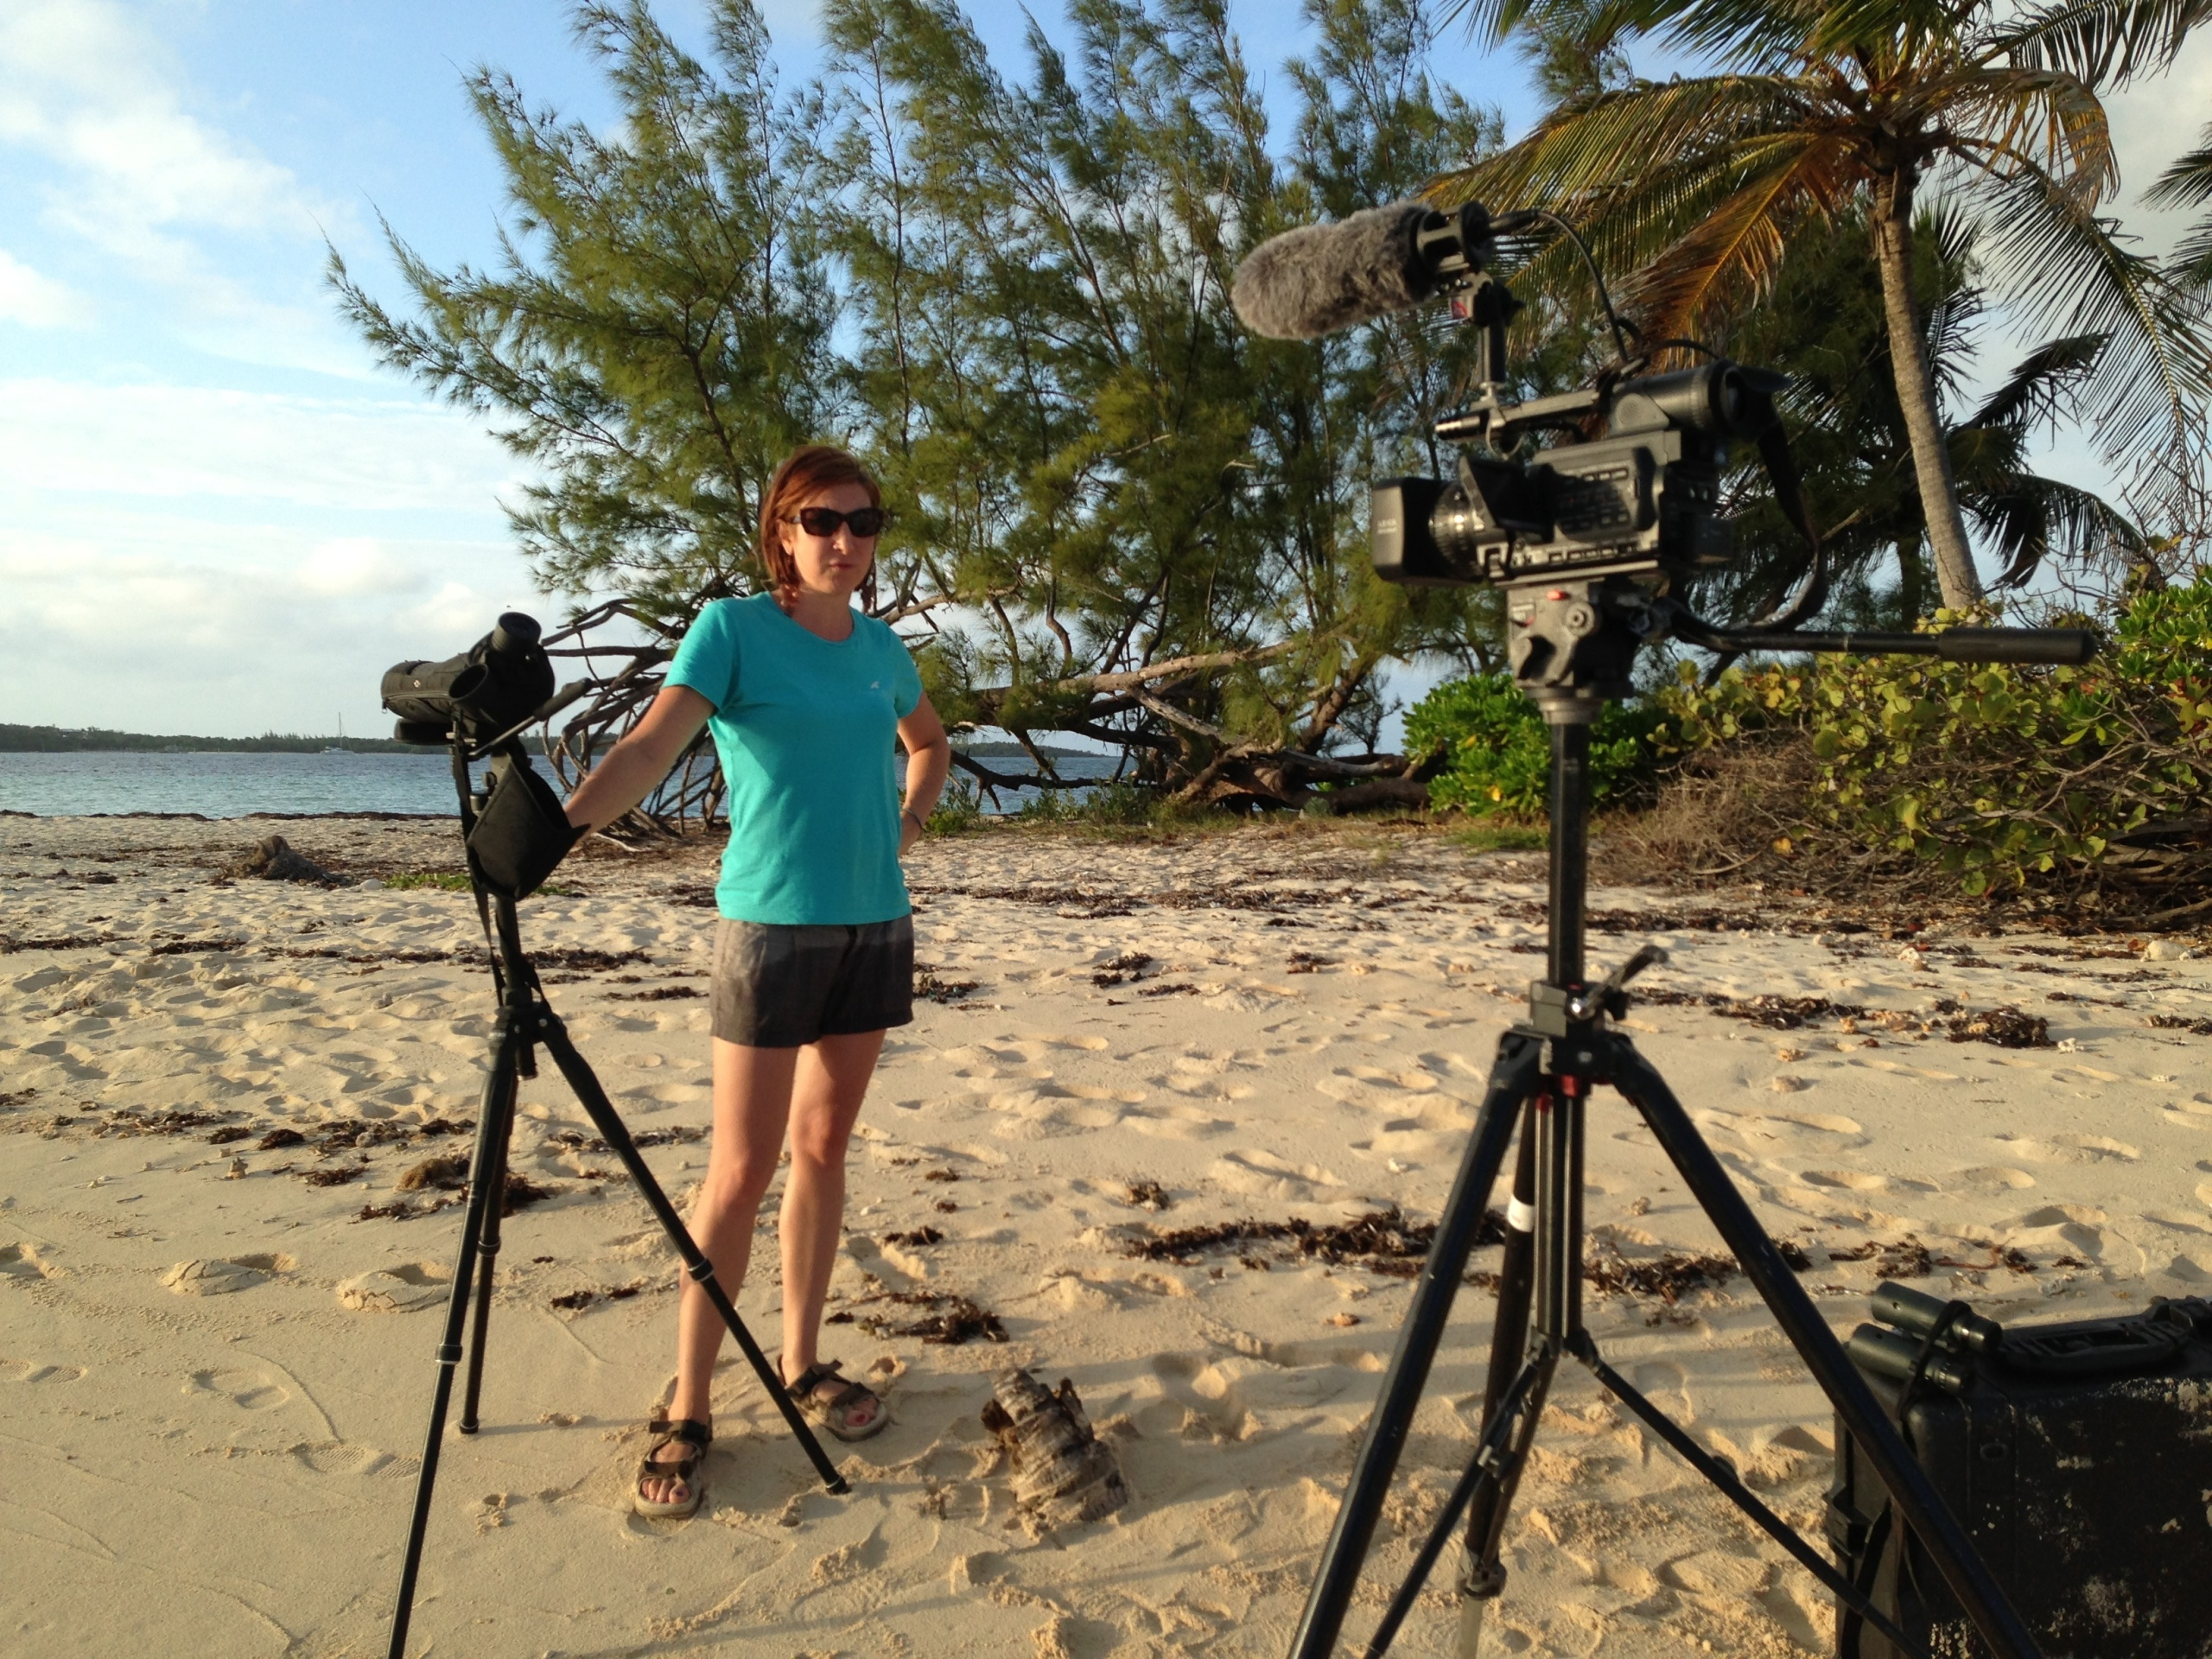 Stephanie Egger filming on location in the Bahamas. Photo from Conserve Wildlife Foundation of New Jersey.